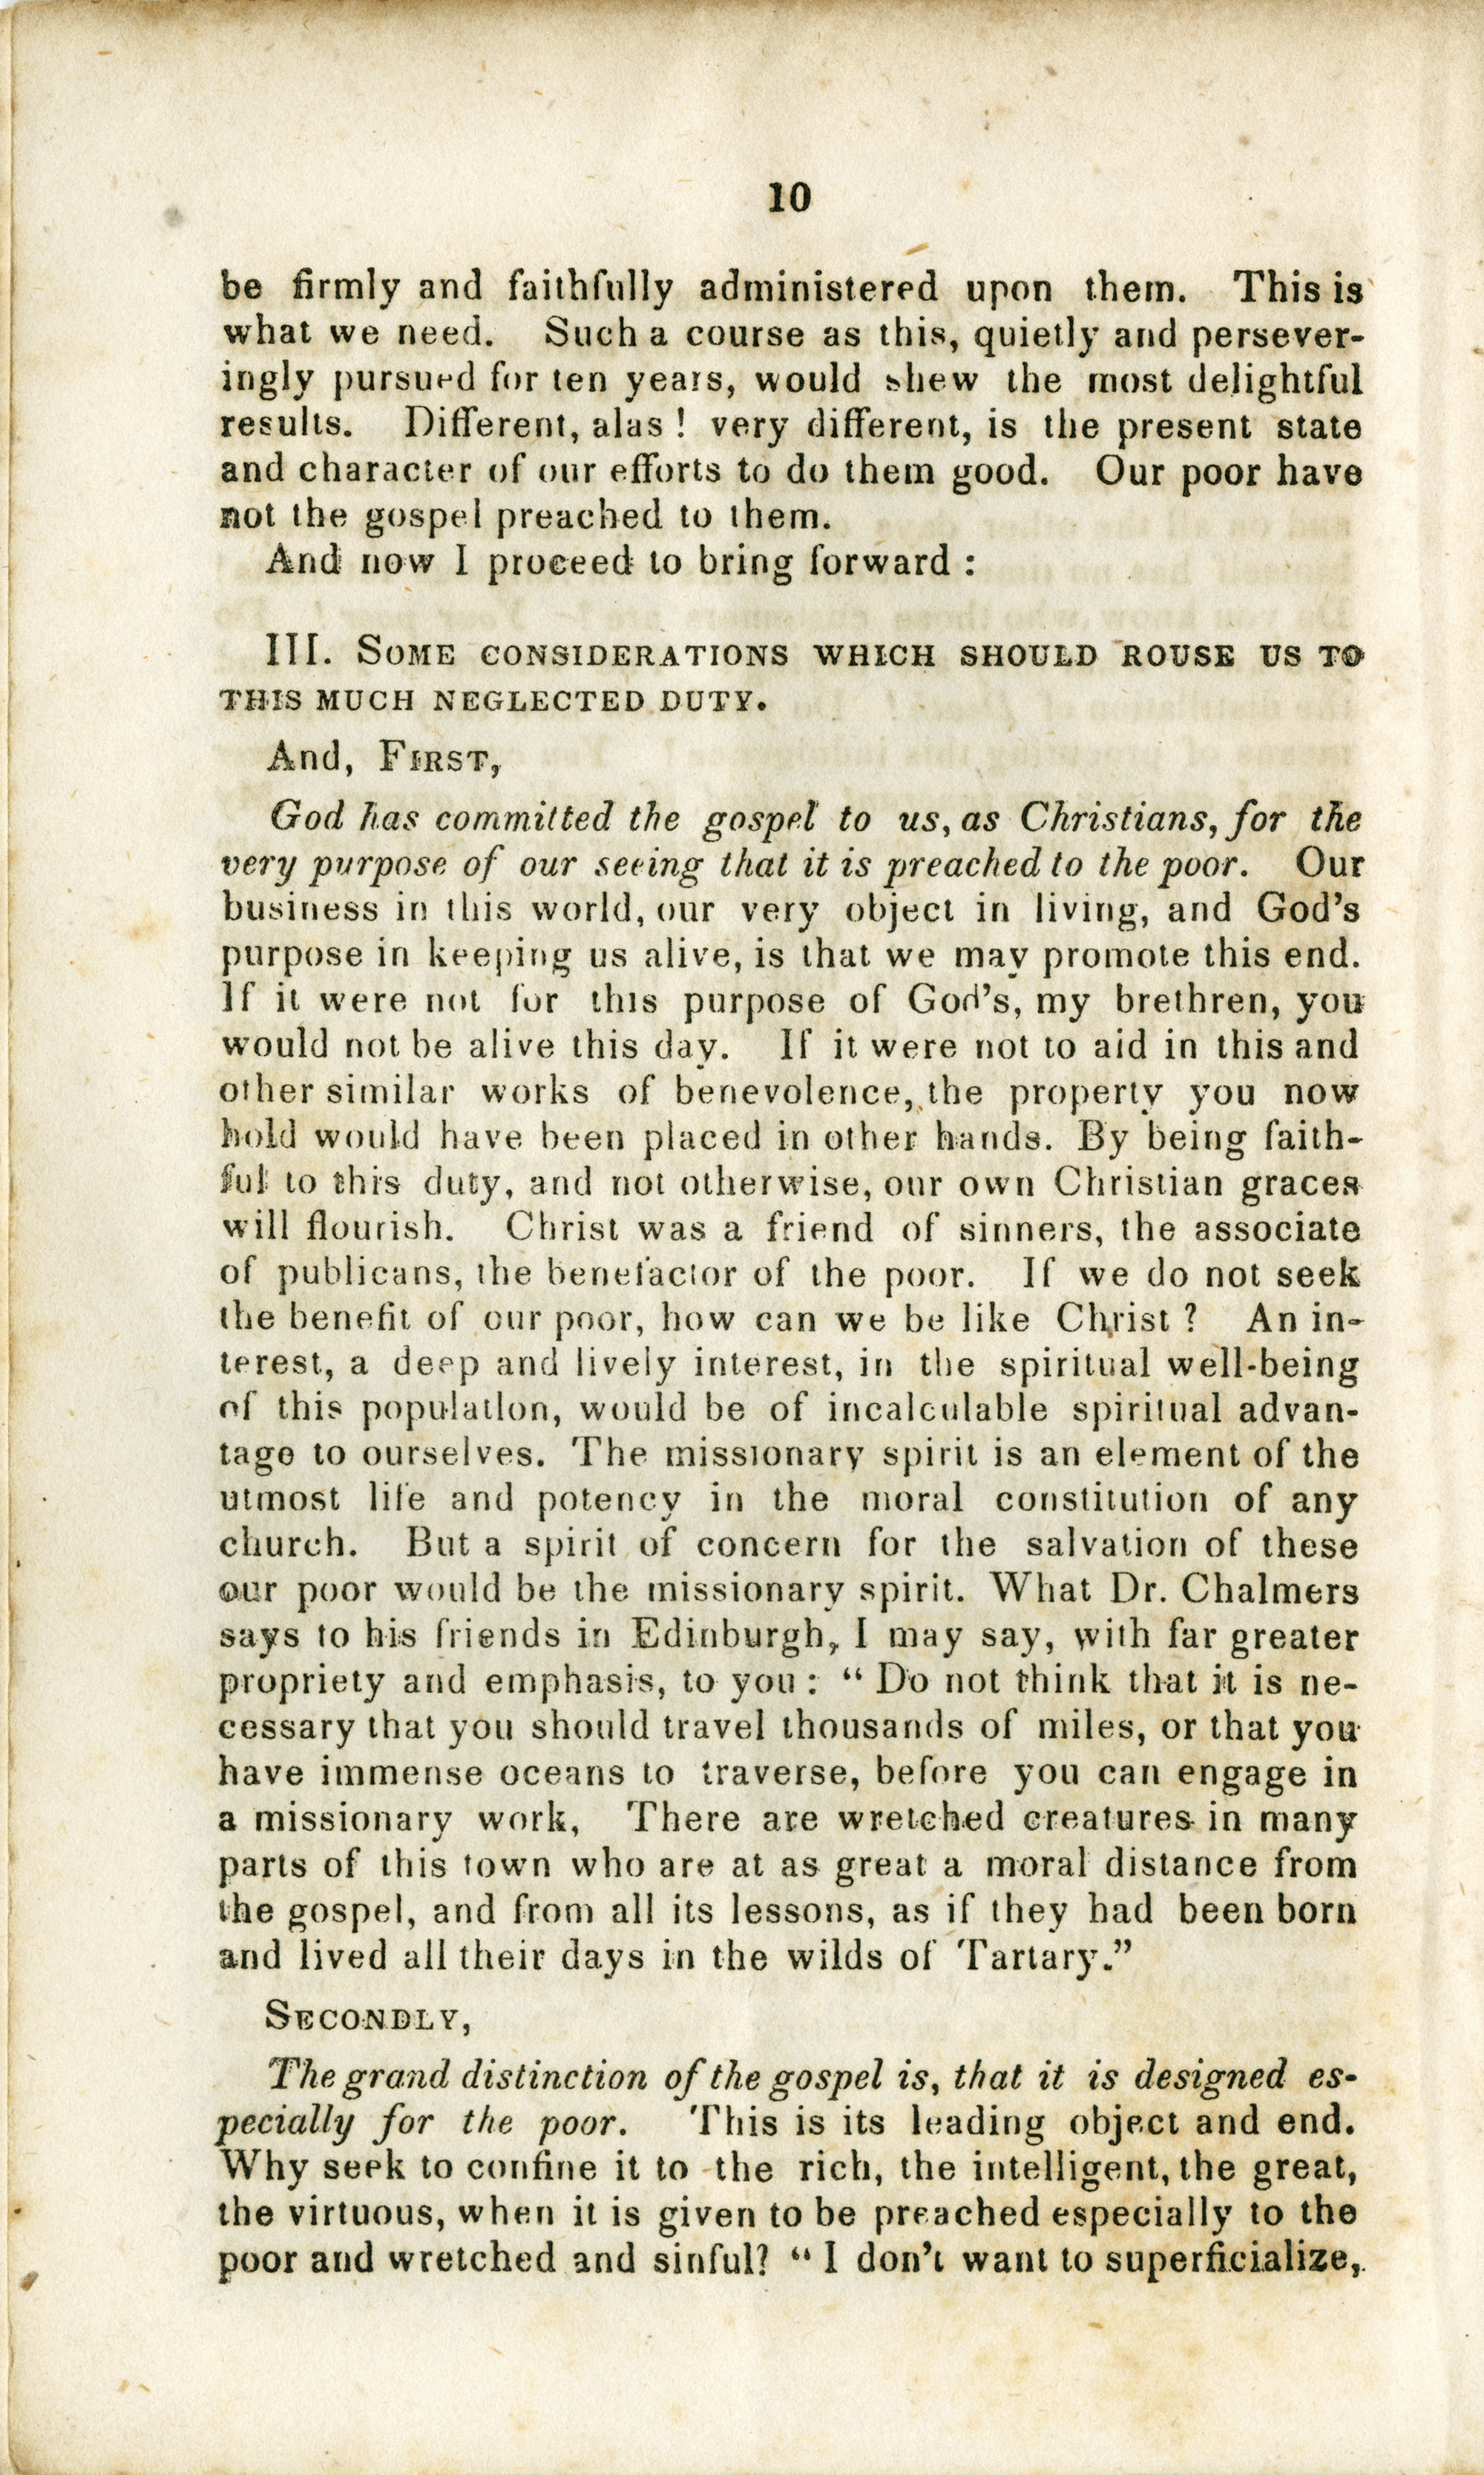 Religious Instruction of the Colored Population, Page 10